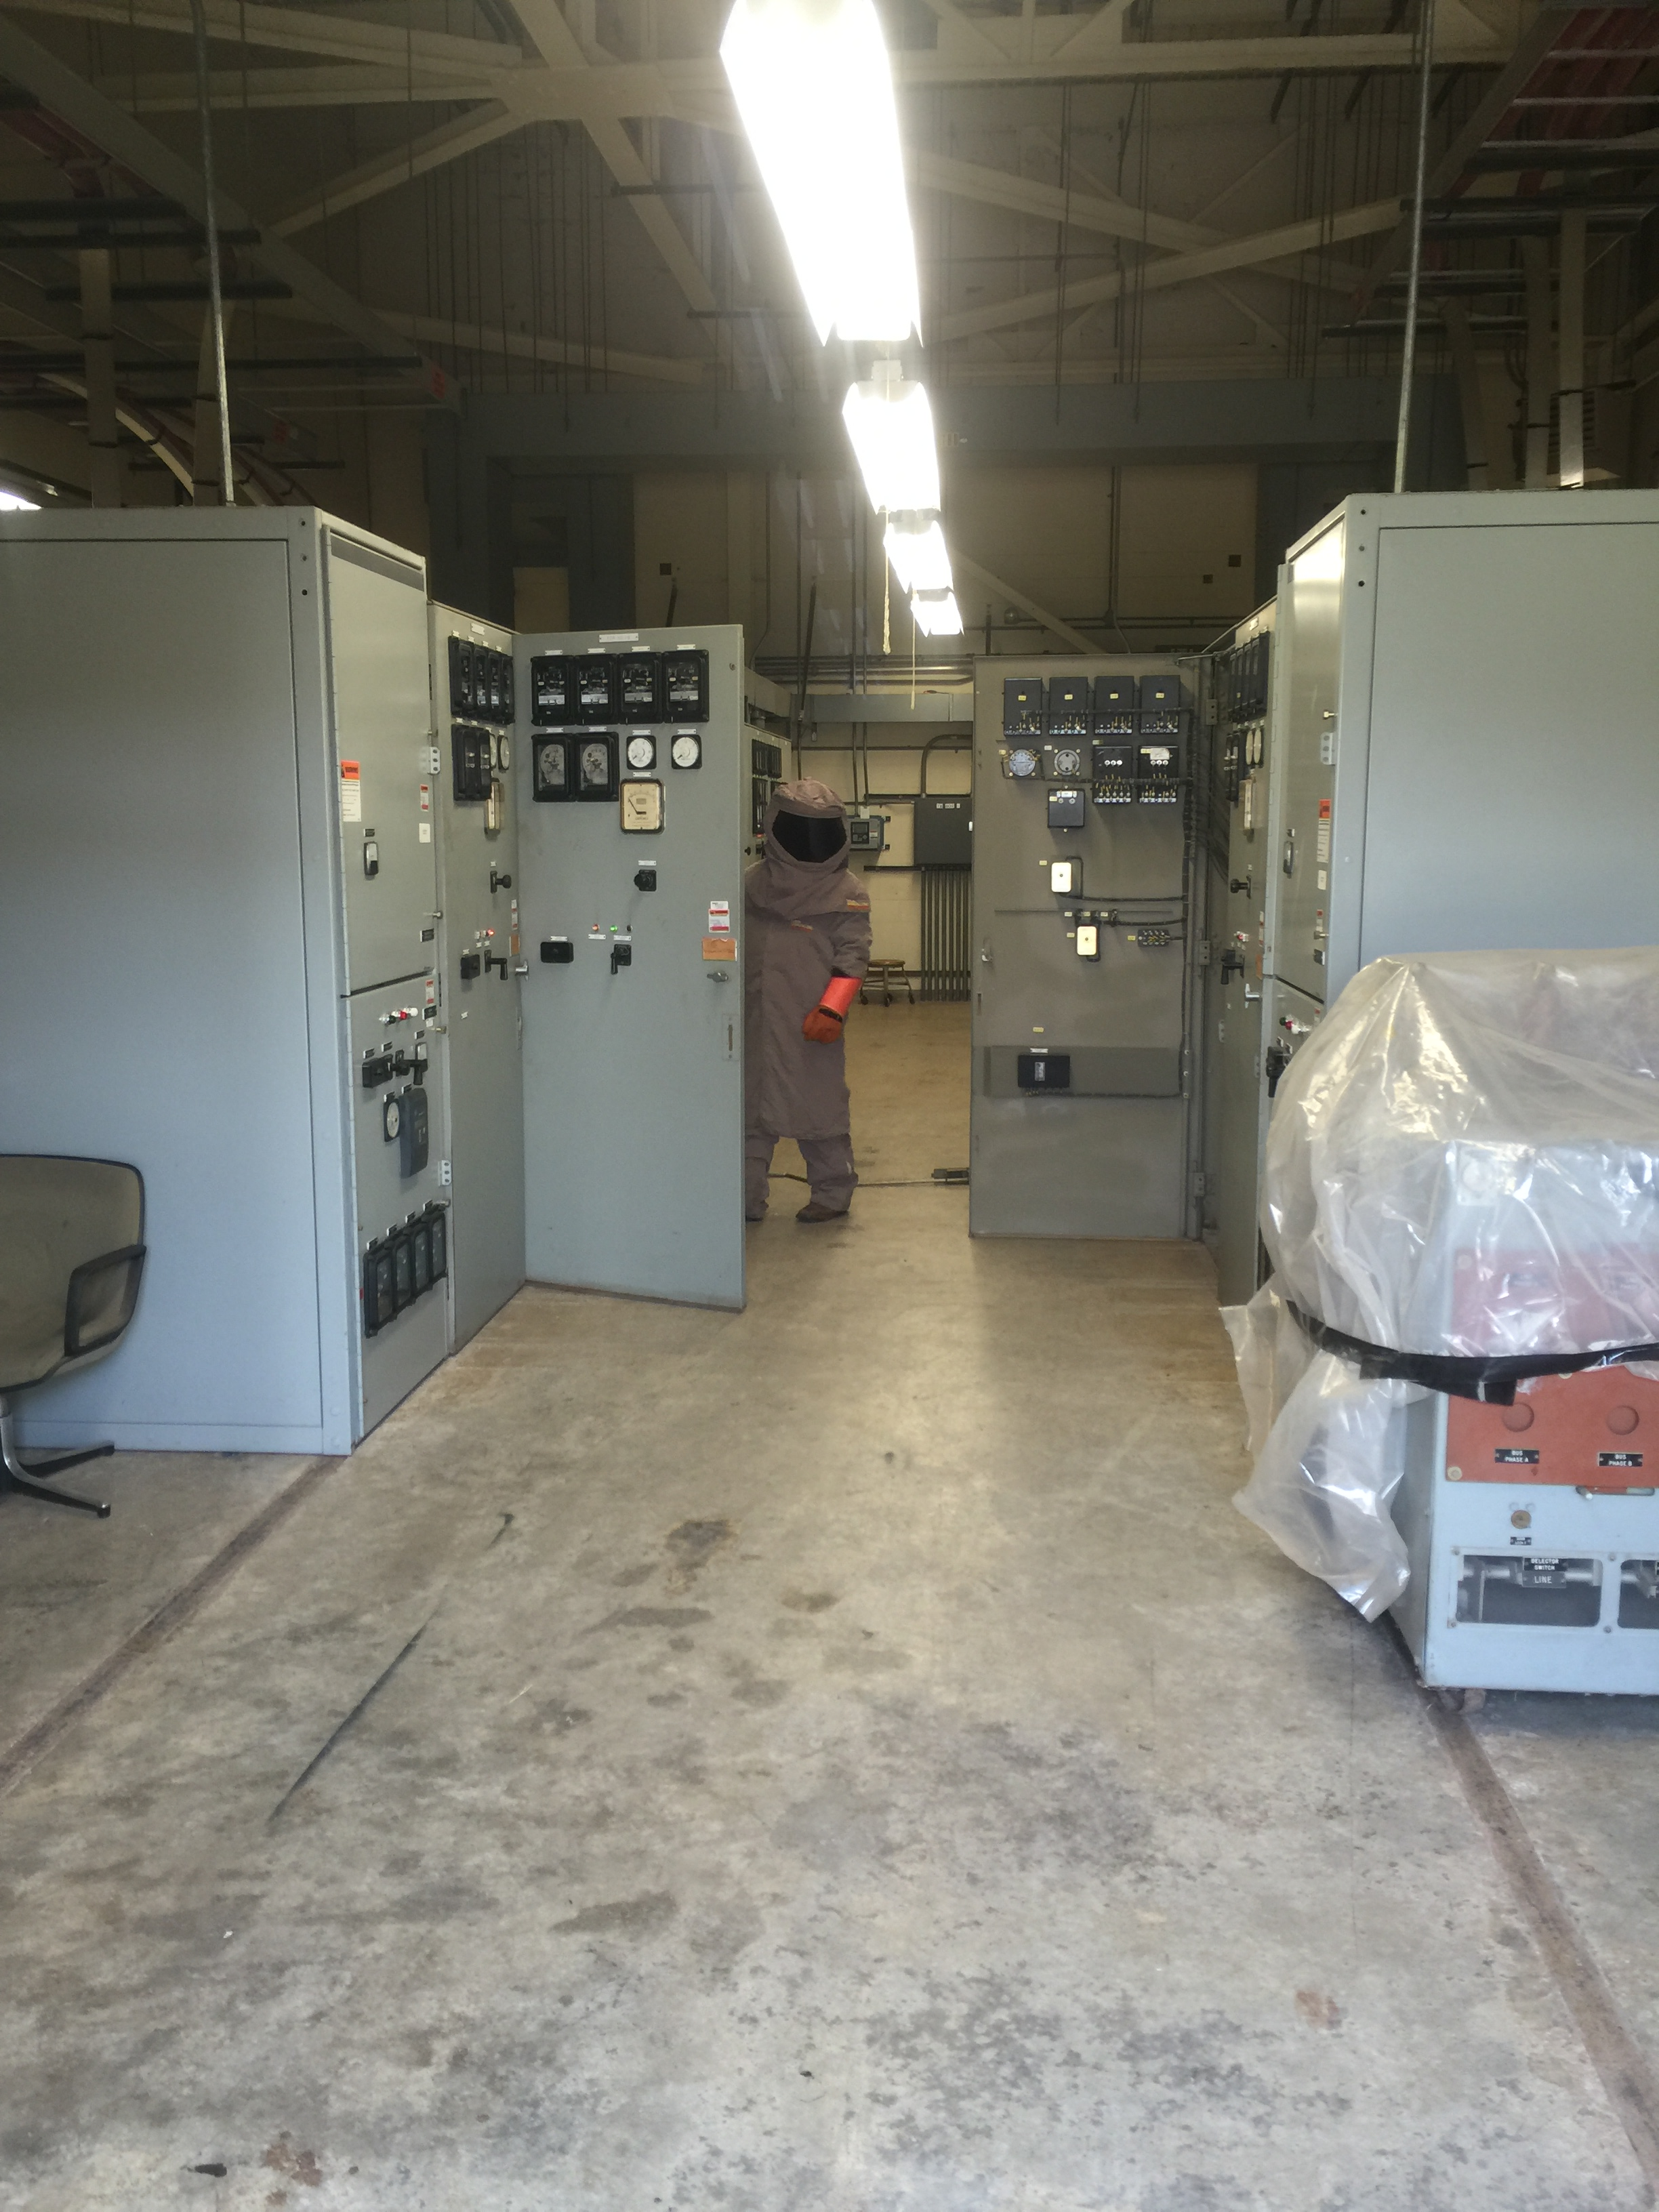 Utilization of Arc Flash Protective Equipment to connect a 480 volt Main Circuit Breaker to Energized Switchgear in a Sub-Station at one of the many Industrial Facilities we provide service to.